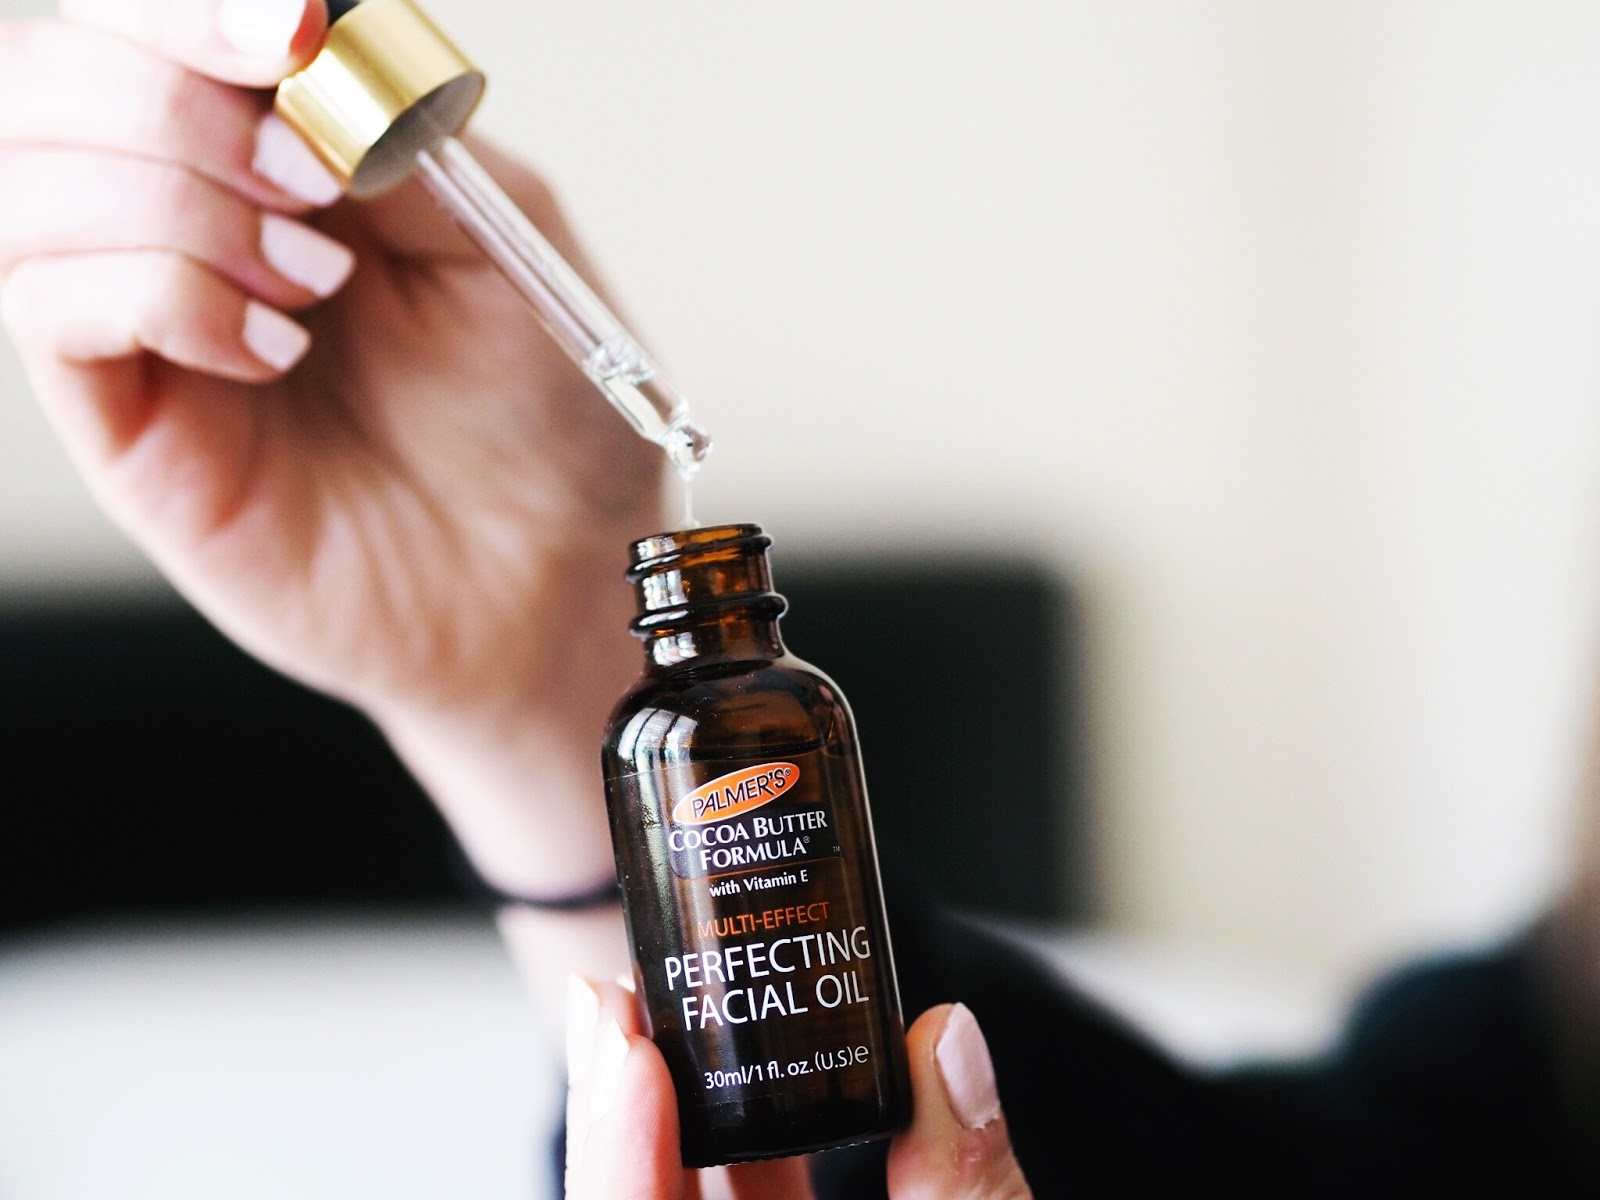 palmers perfecting facial oil review